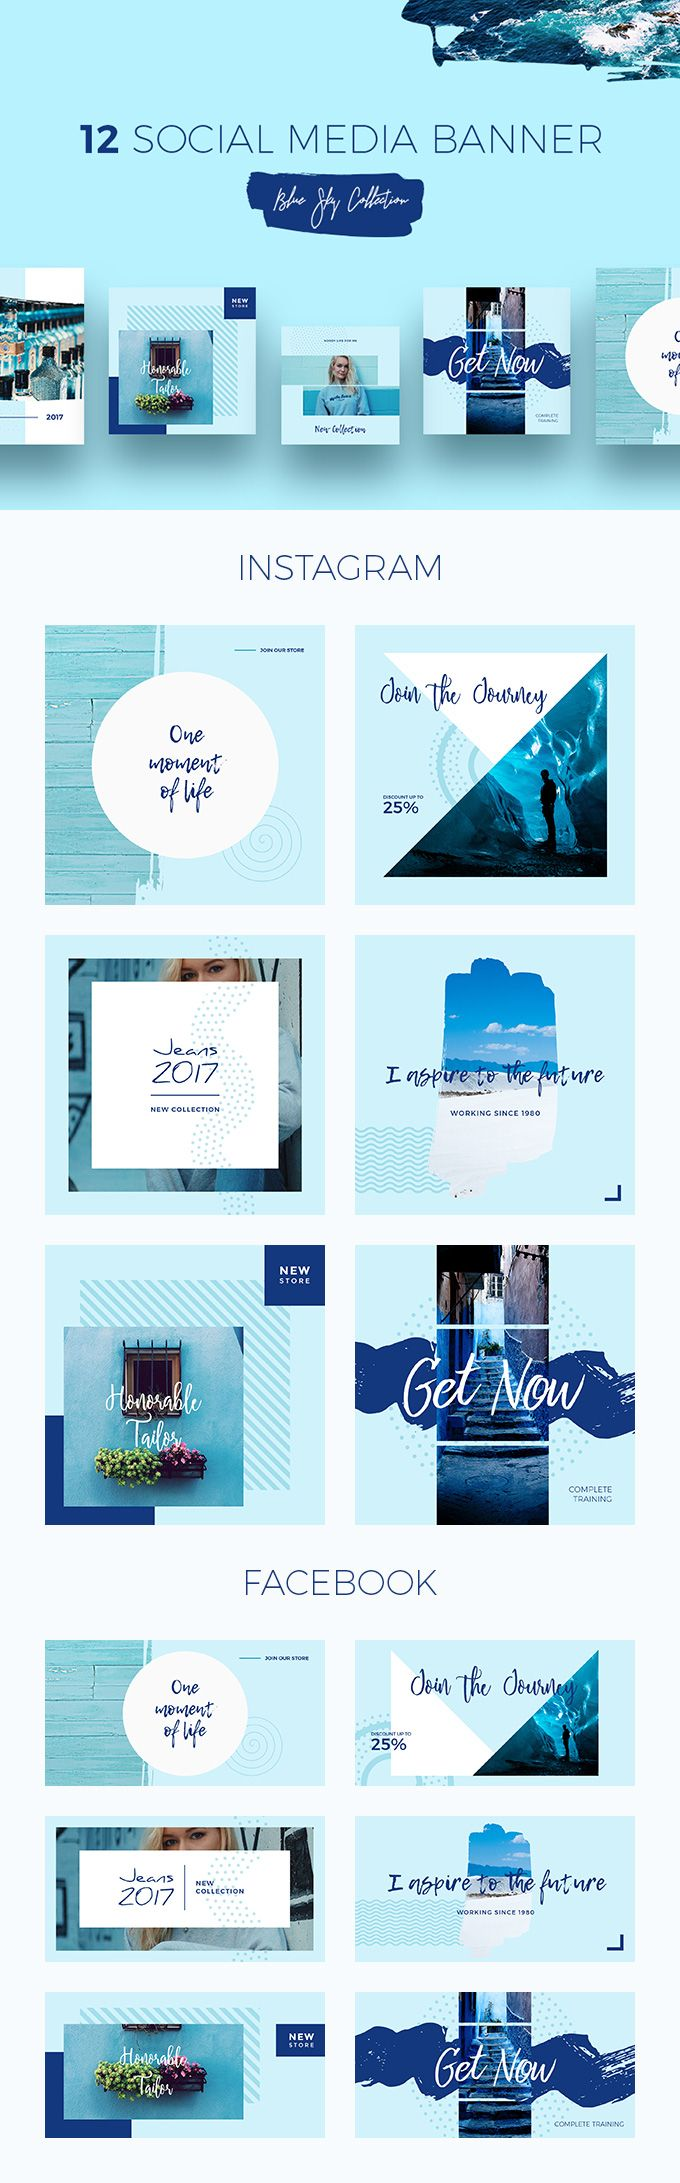 Blue Sky Social Media Templates - download freebie by PixelBuddha